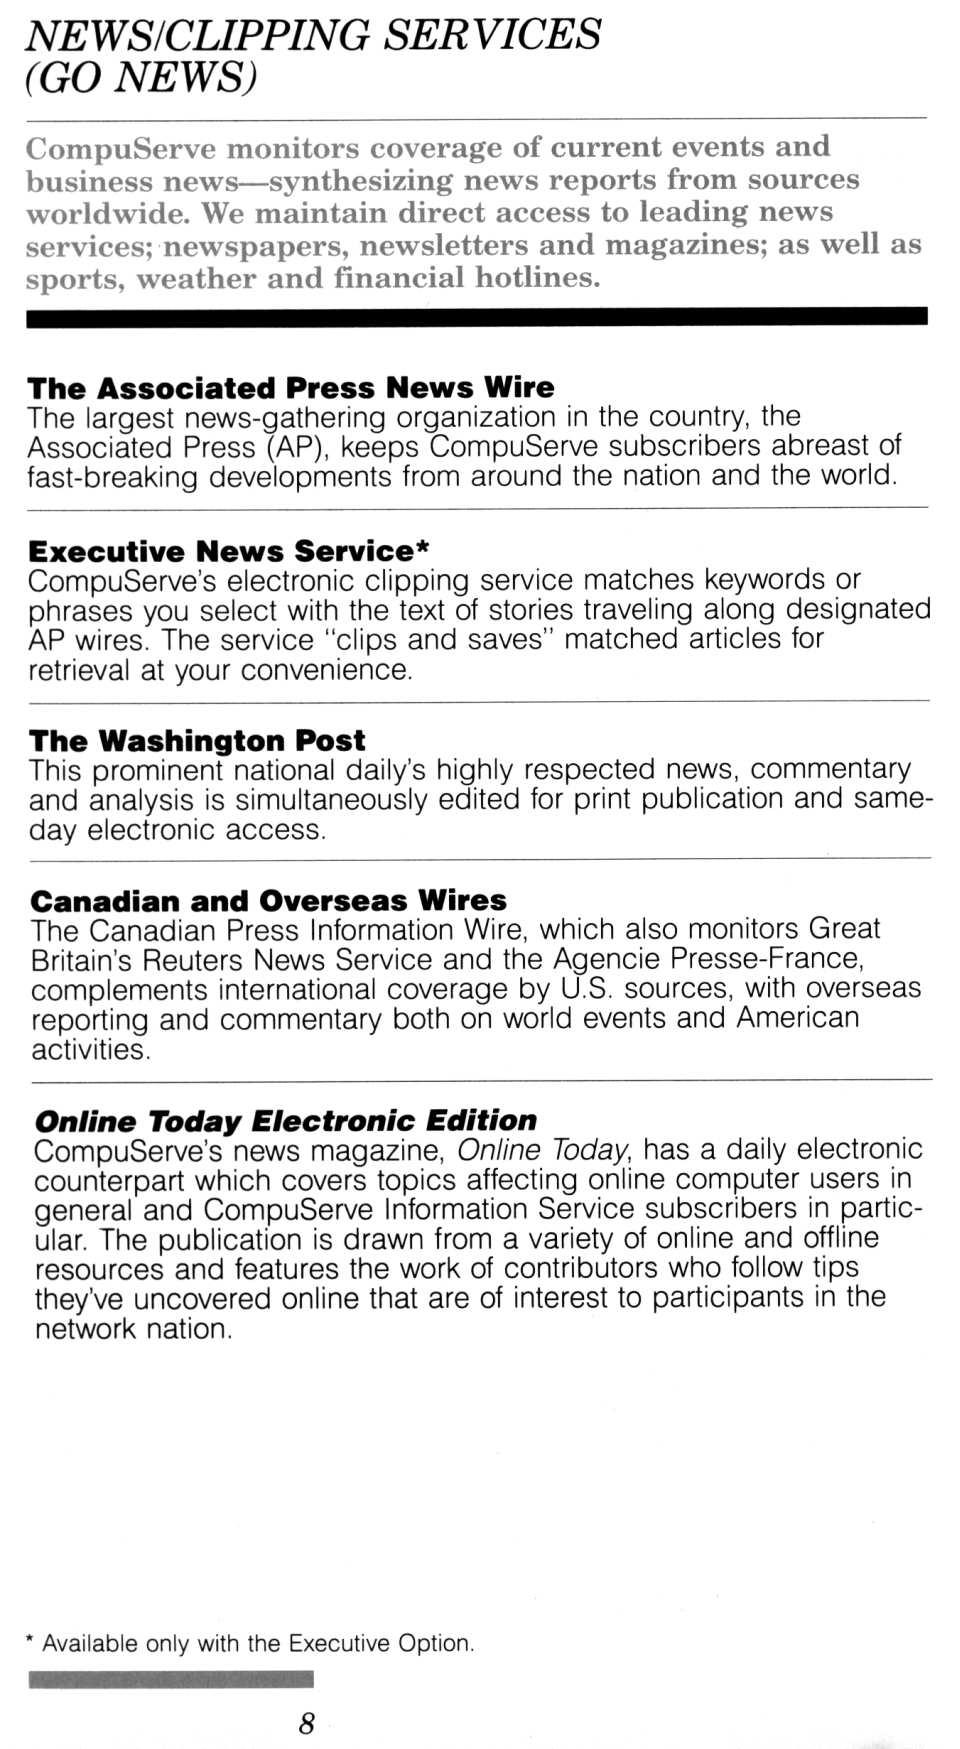 [CompuServe IntroPak page 8/44  News/Clipping Services (GO NEWS)]